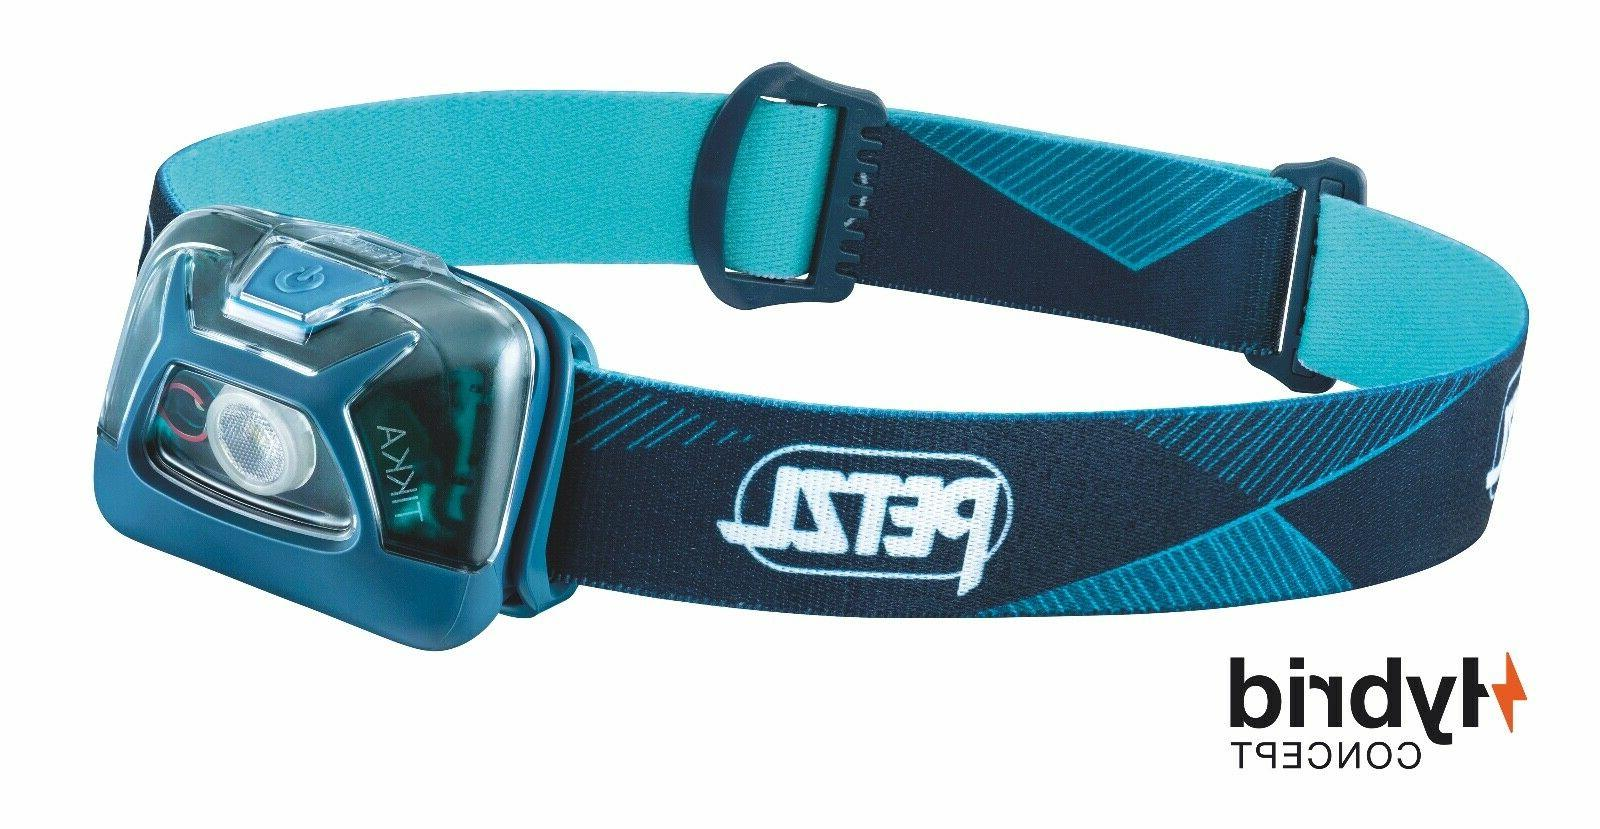 PETZL HEADLAMP - NEW for 2019/2020 - E93